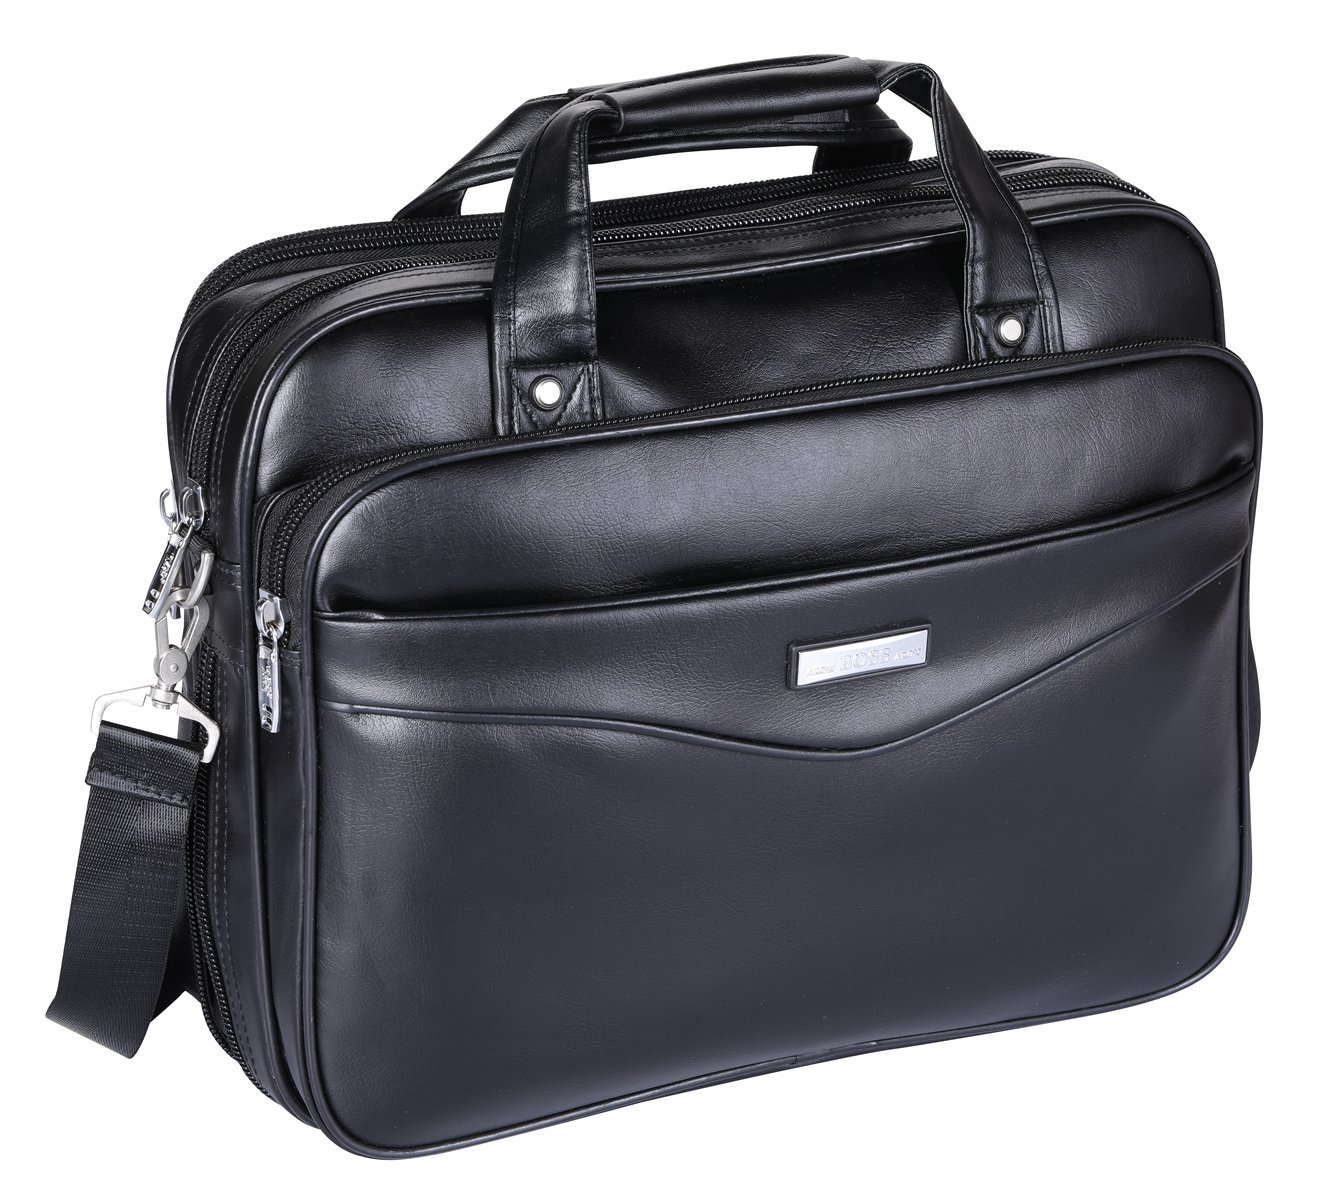 Leather 16 inch Laptop Briefcase,ARON Boss Series Water Resistant Large Shoulder Bag Functional Business Handle Bag for 15.6 inch laptop (AC2-Black)